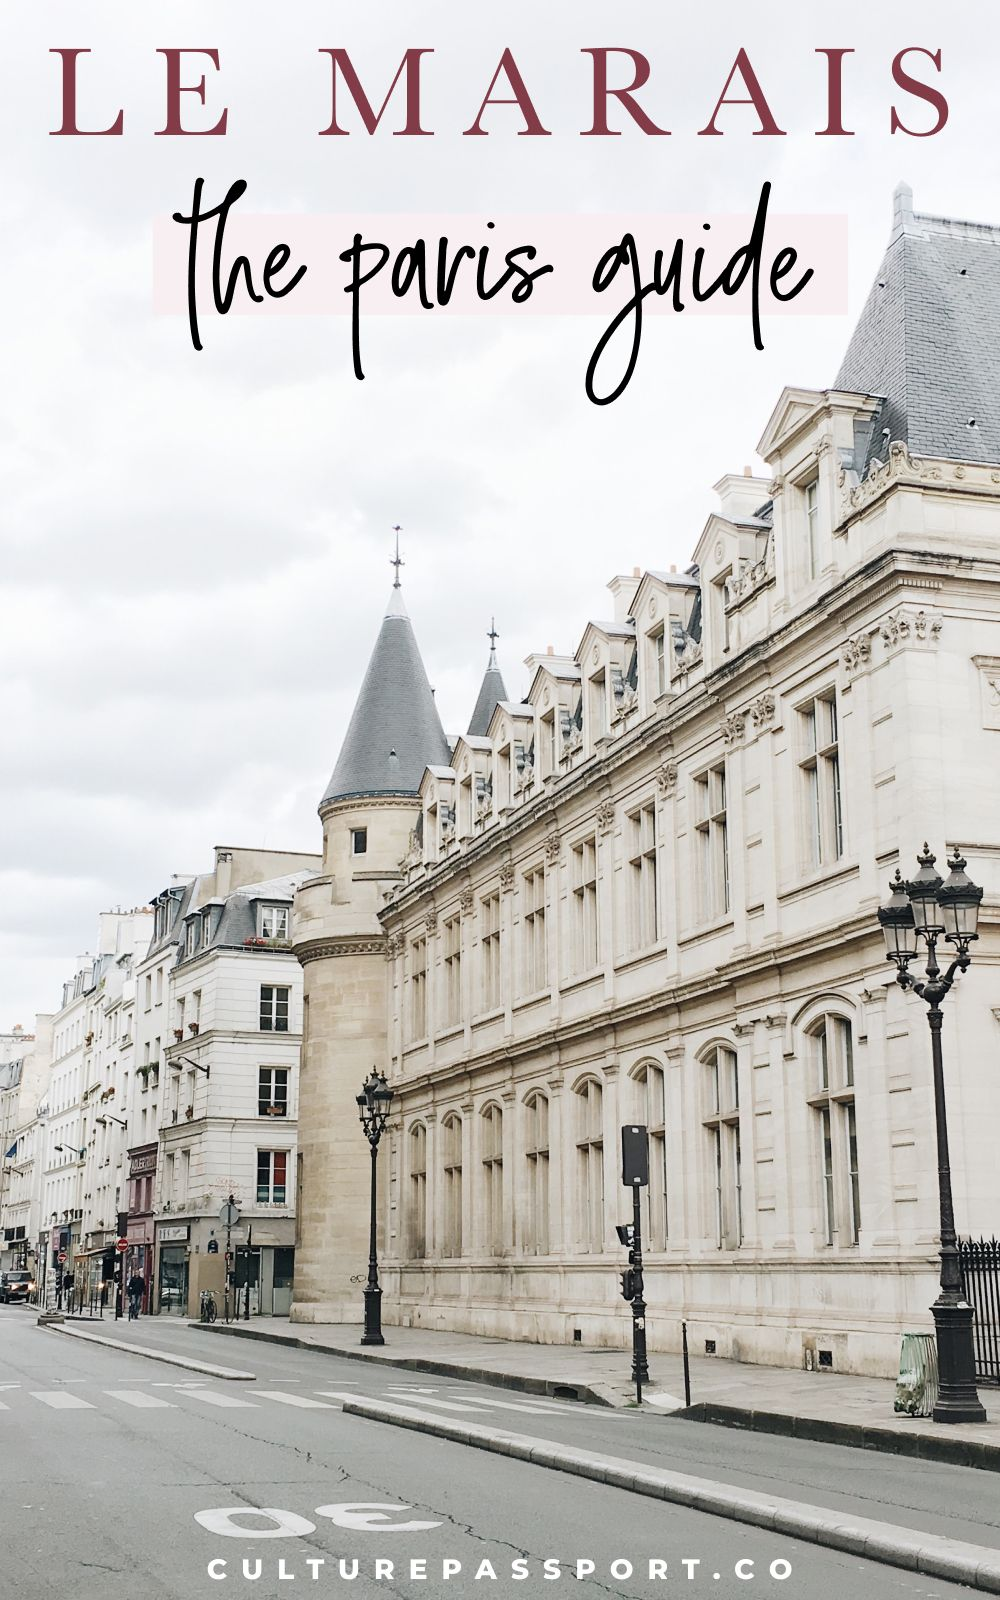 Le Marais - The Paris Guide